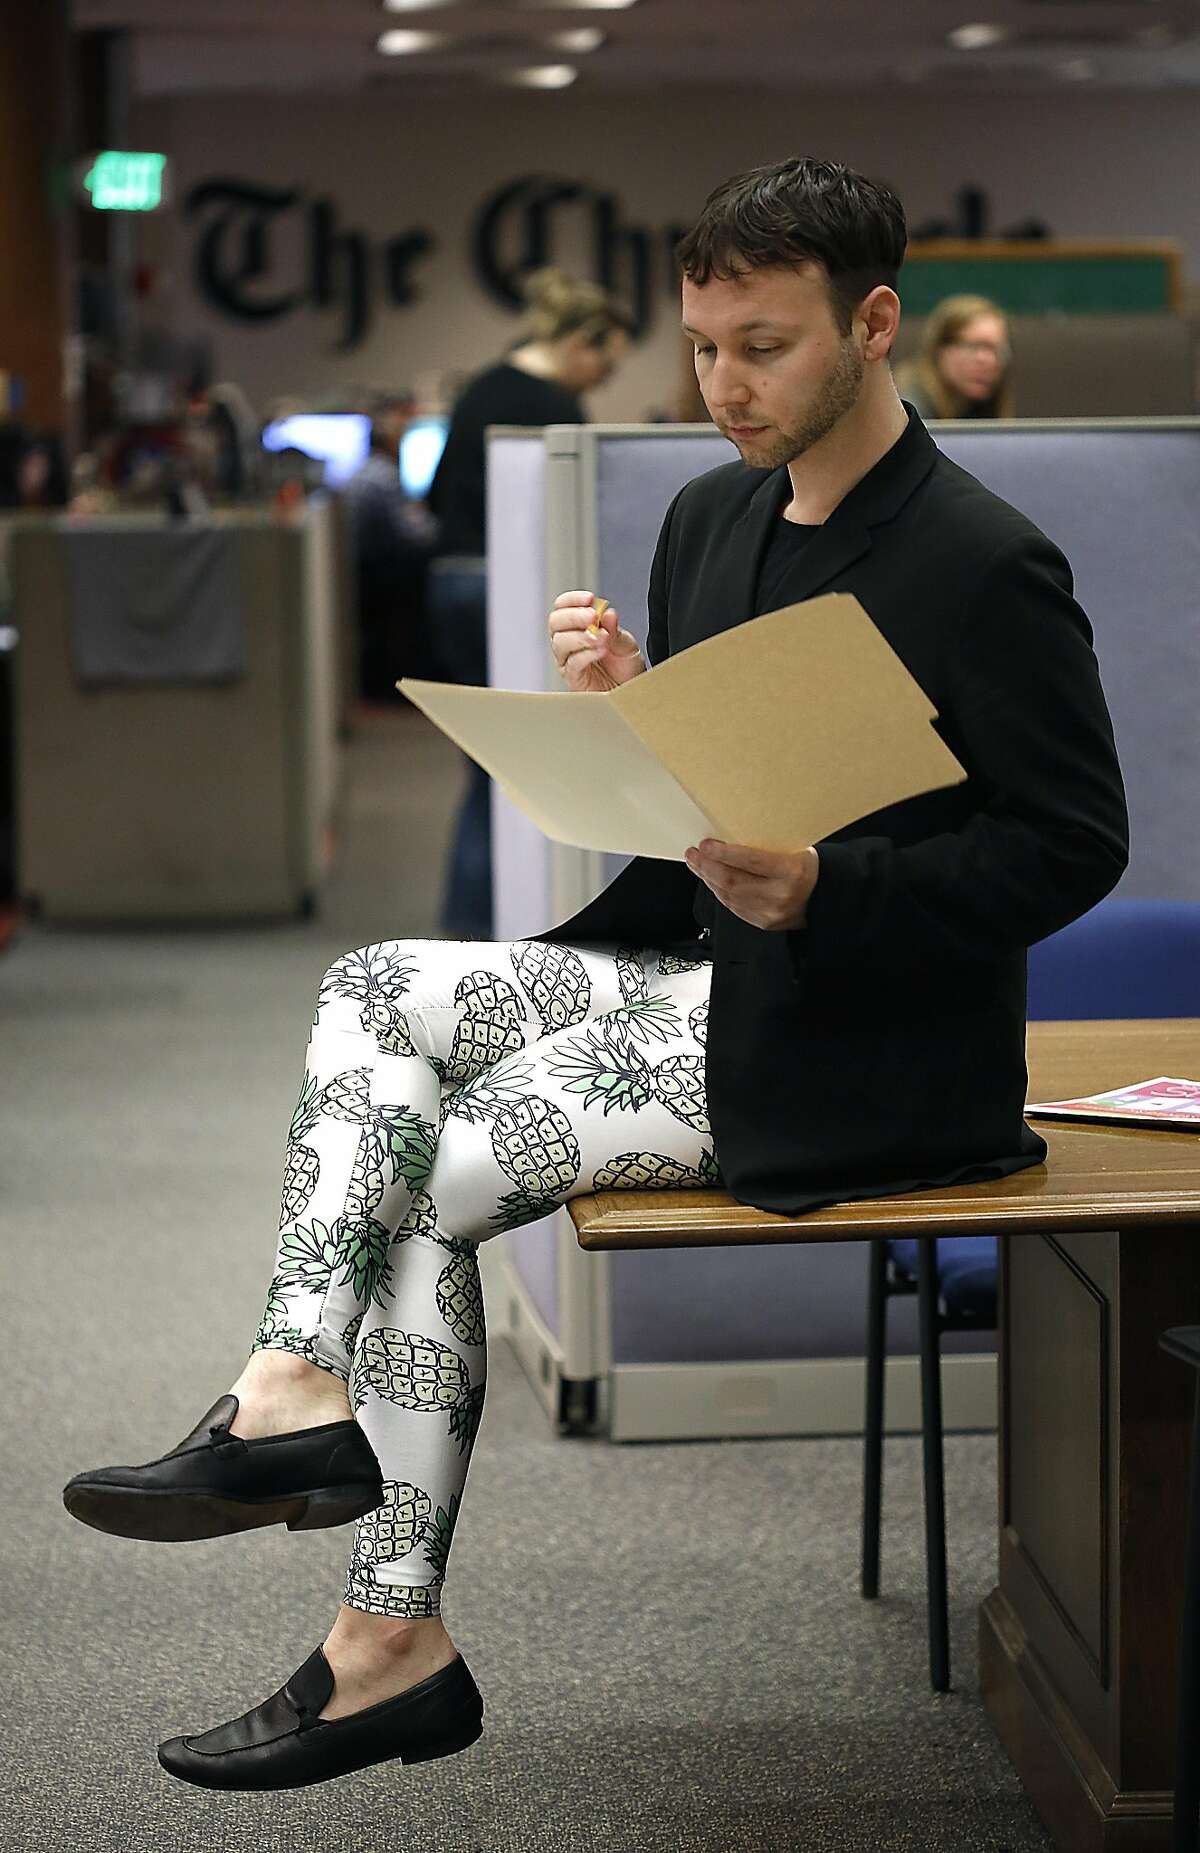 Writer Tony Bravo wears meggings in the newsroom of the San Francisco Chronicle on Tuesday, February 7, 2017, in San Francisco, Calif.